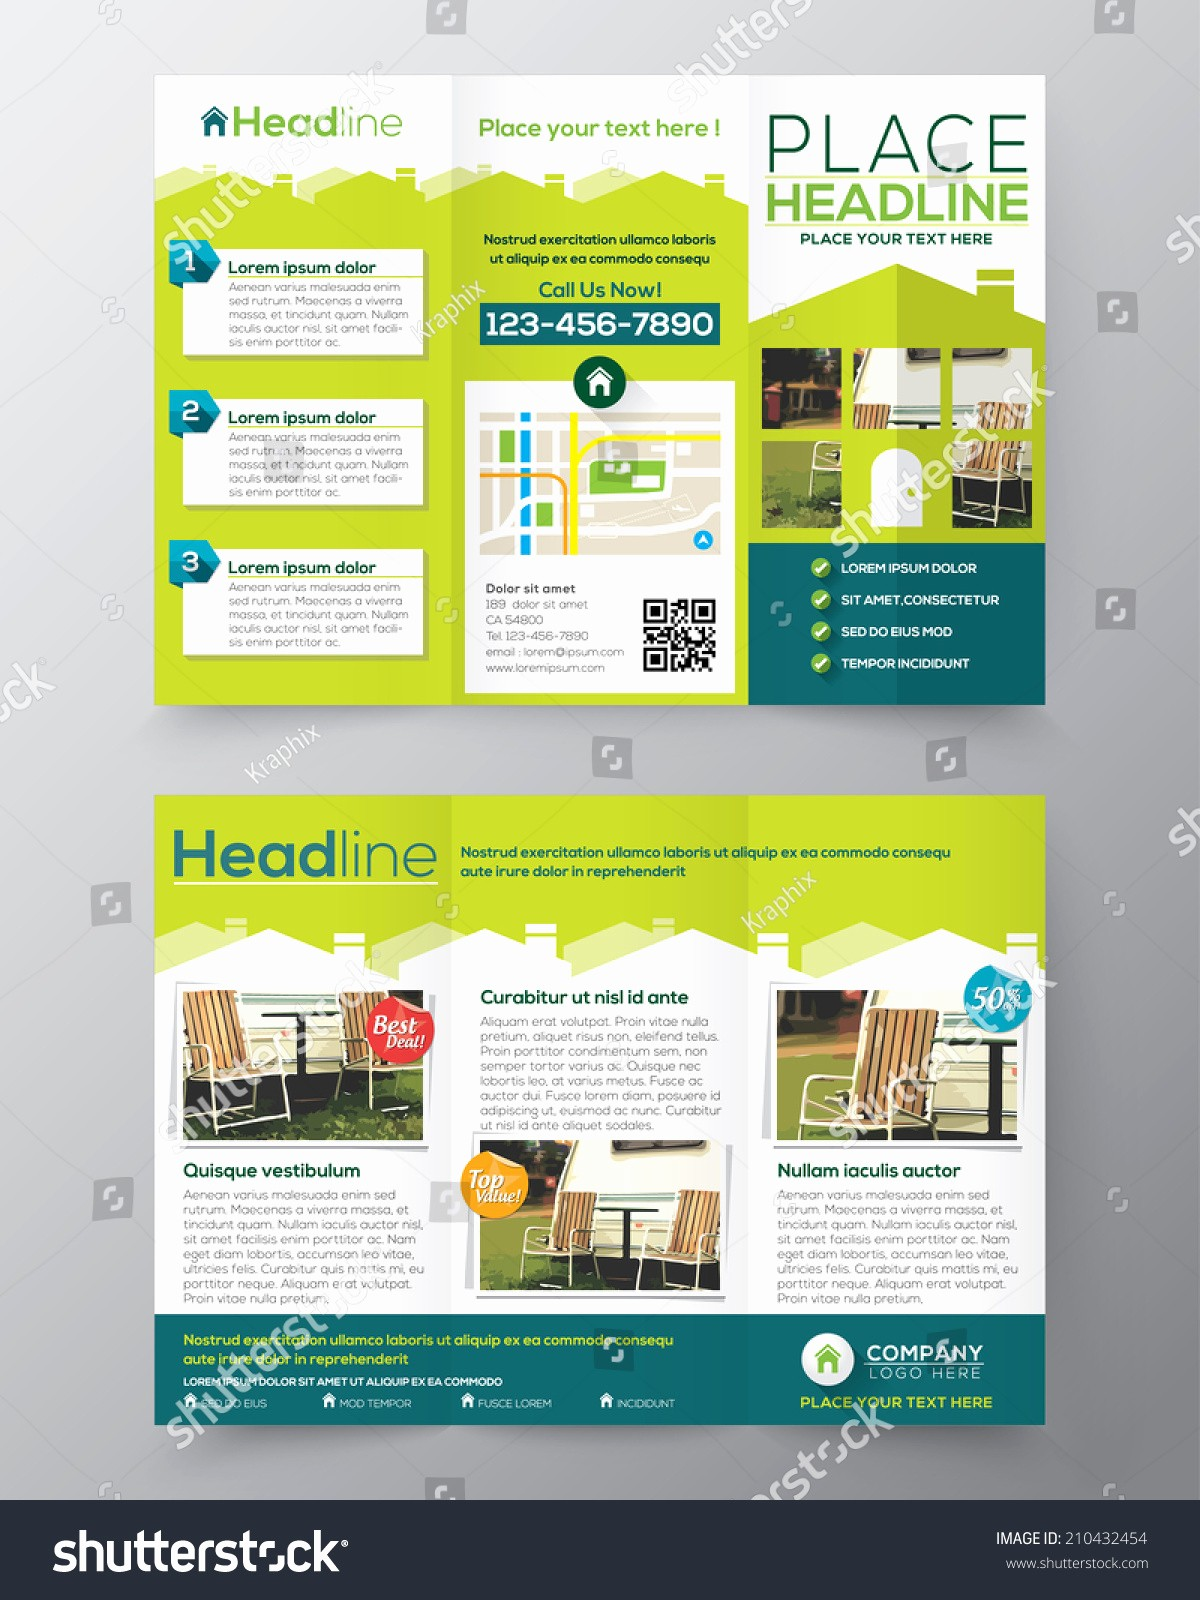 Templates for Flyers and Brochures Lovely Real Estate Brochure Flyer Design Vector Template In A4